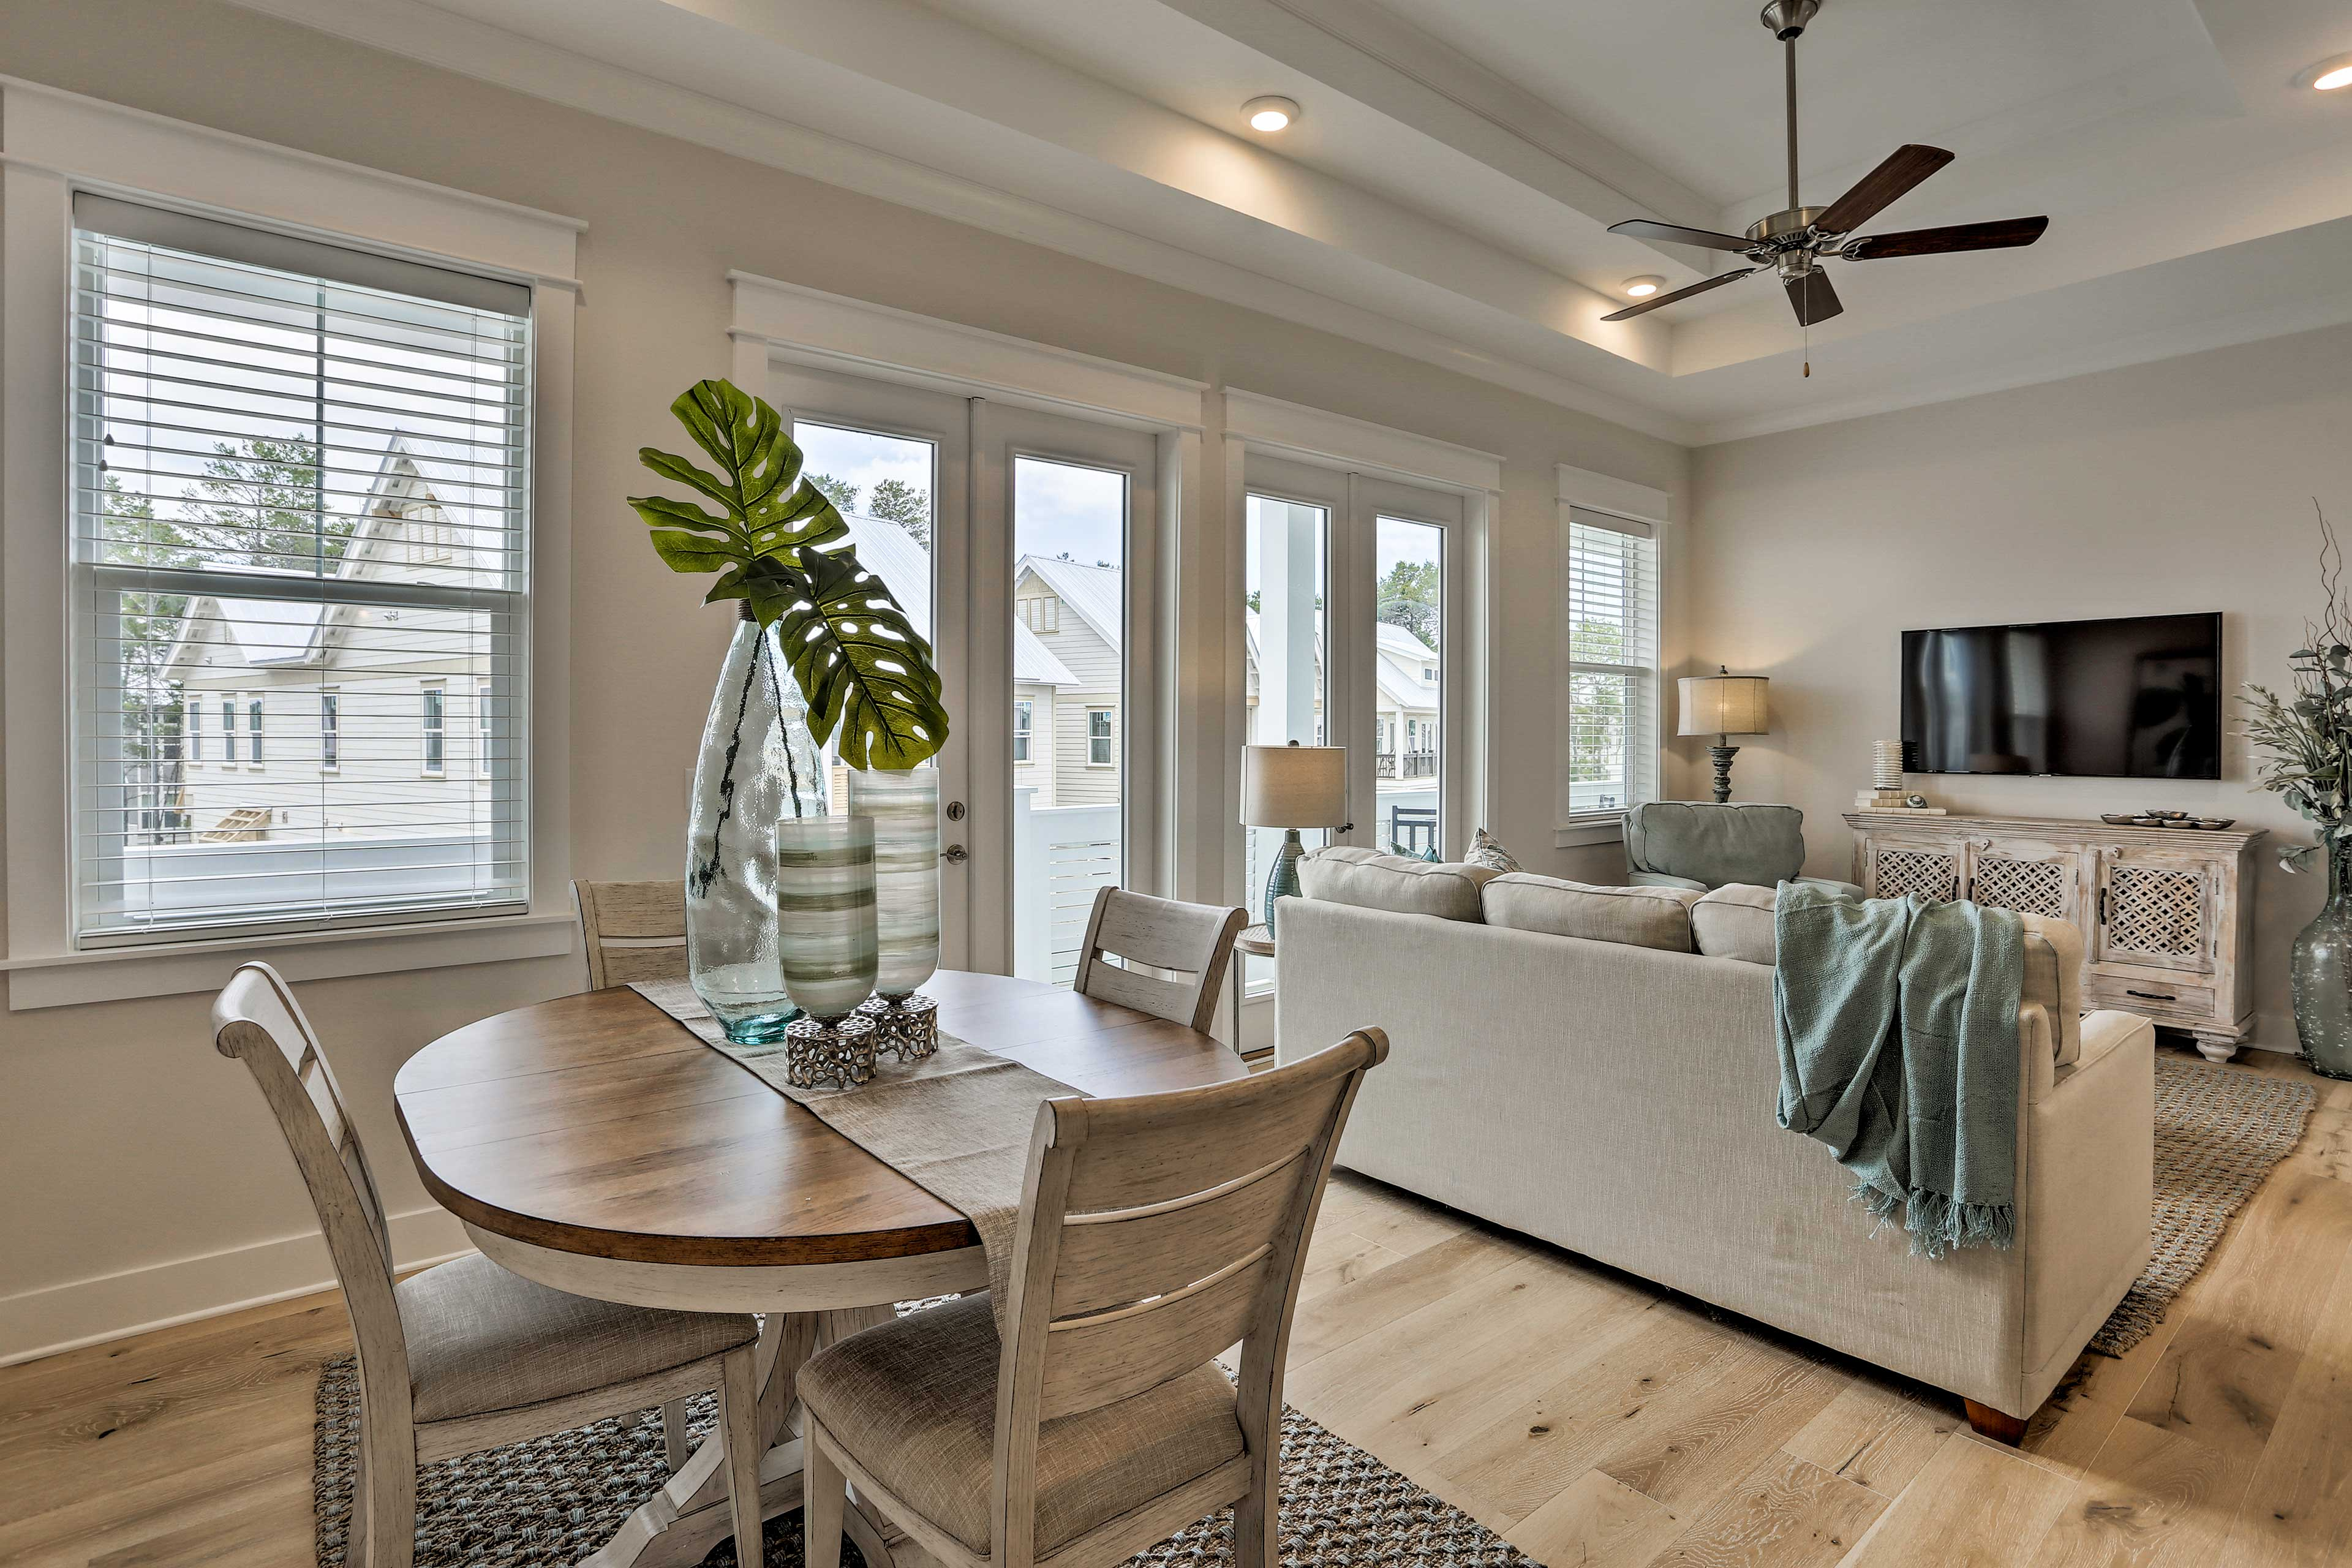 Fall in love with the charm of this 2-bedroom, 2-bath vacation rental townhome!